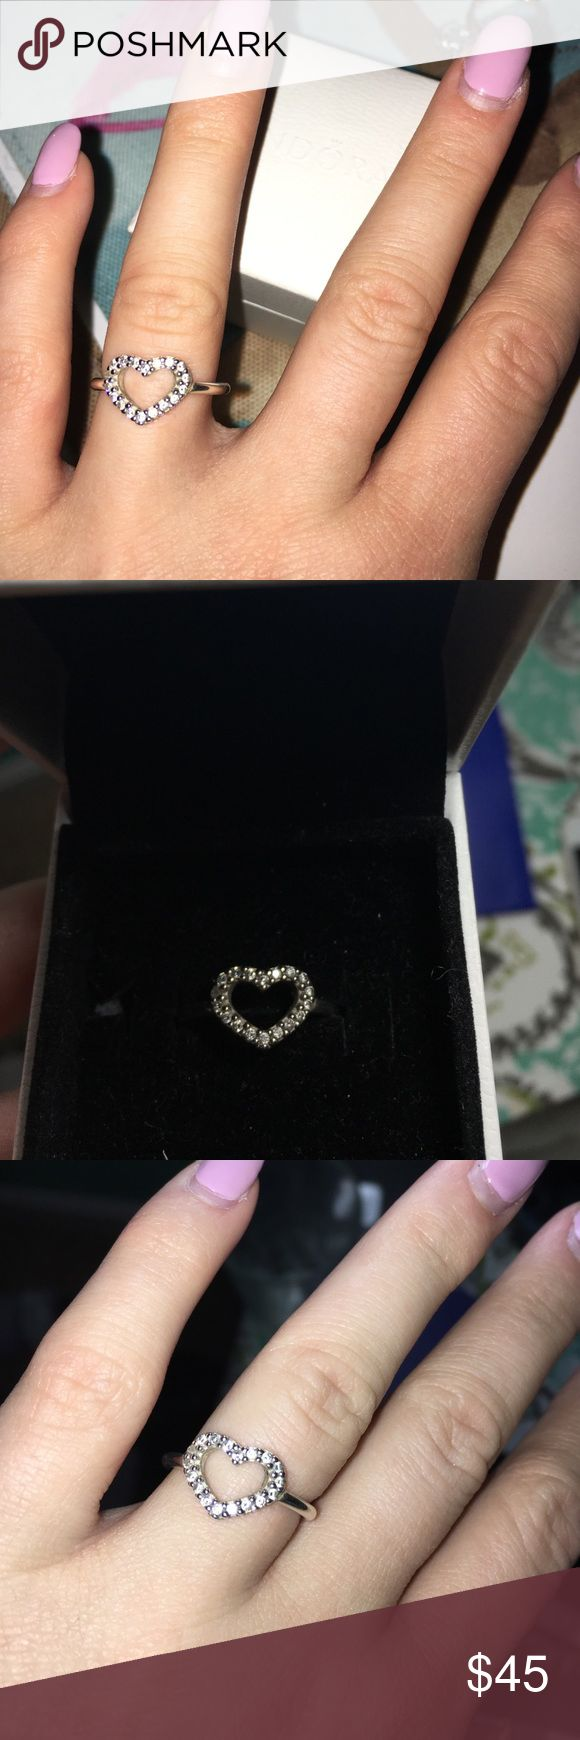 """Pandora Sterling Silver """"Be My Valentine"""" Ring beautiful sterling silver pandora ring. I got this from an ex and it just needs to go lol. This is in great condition I took good care of it. Pandora Jewelry Rings"""